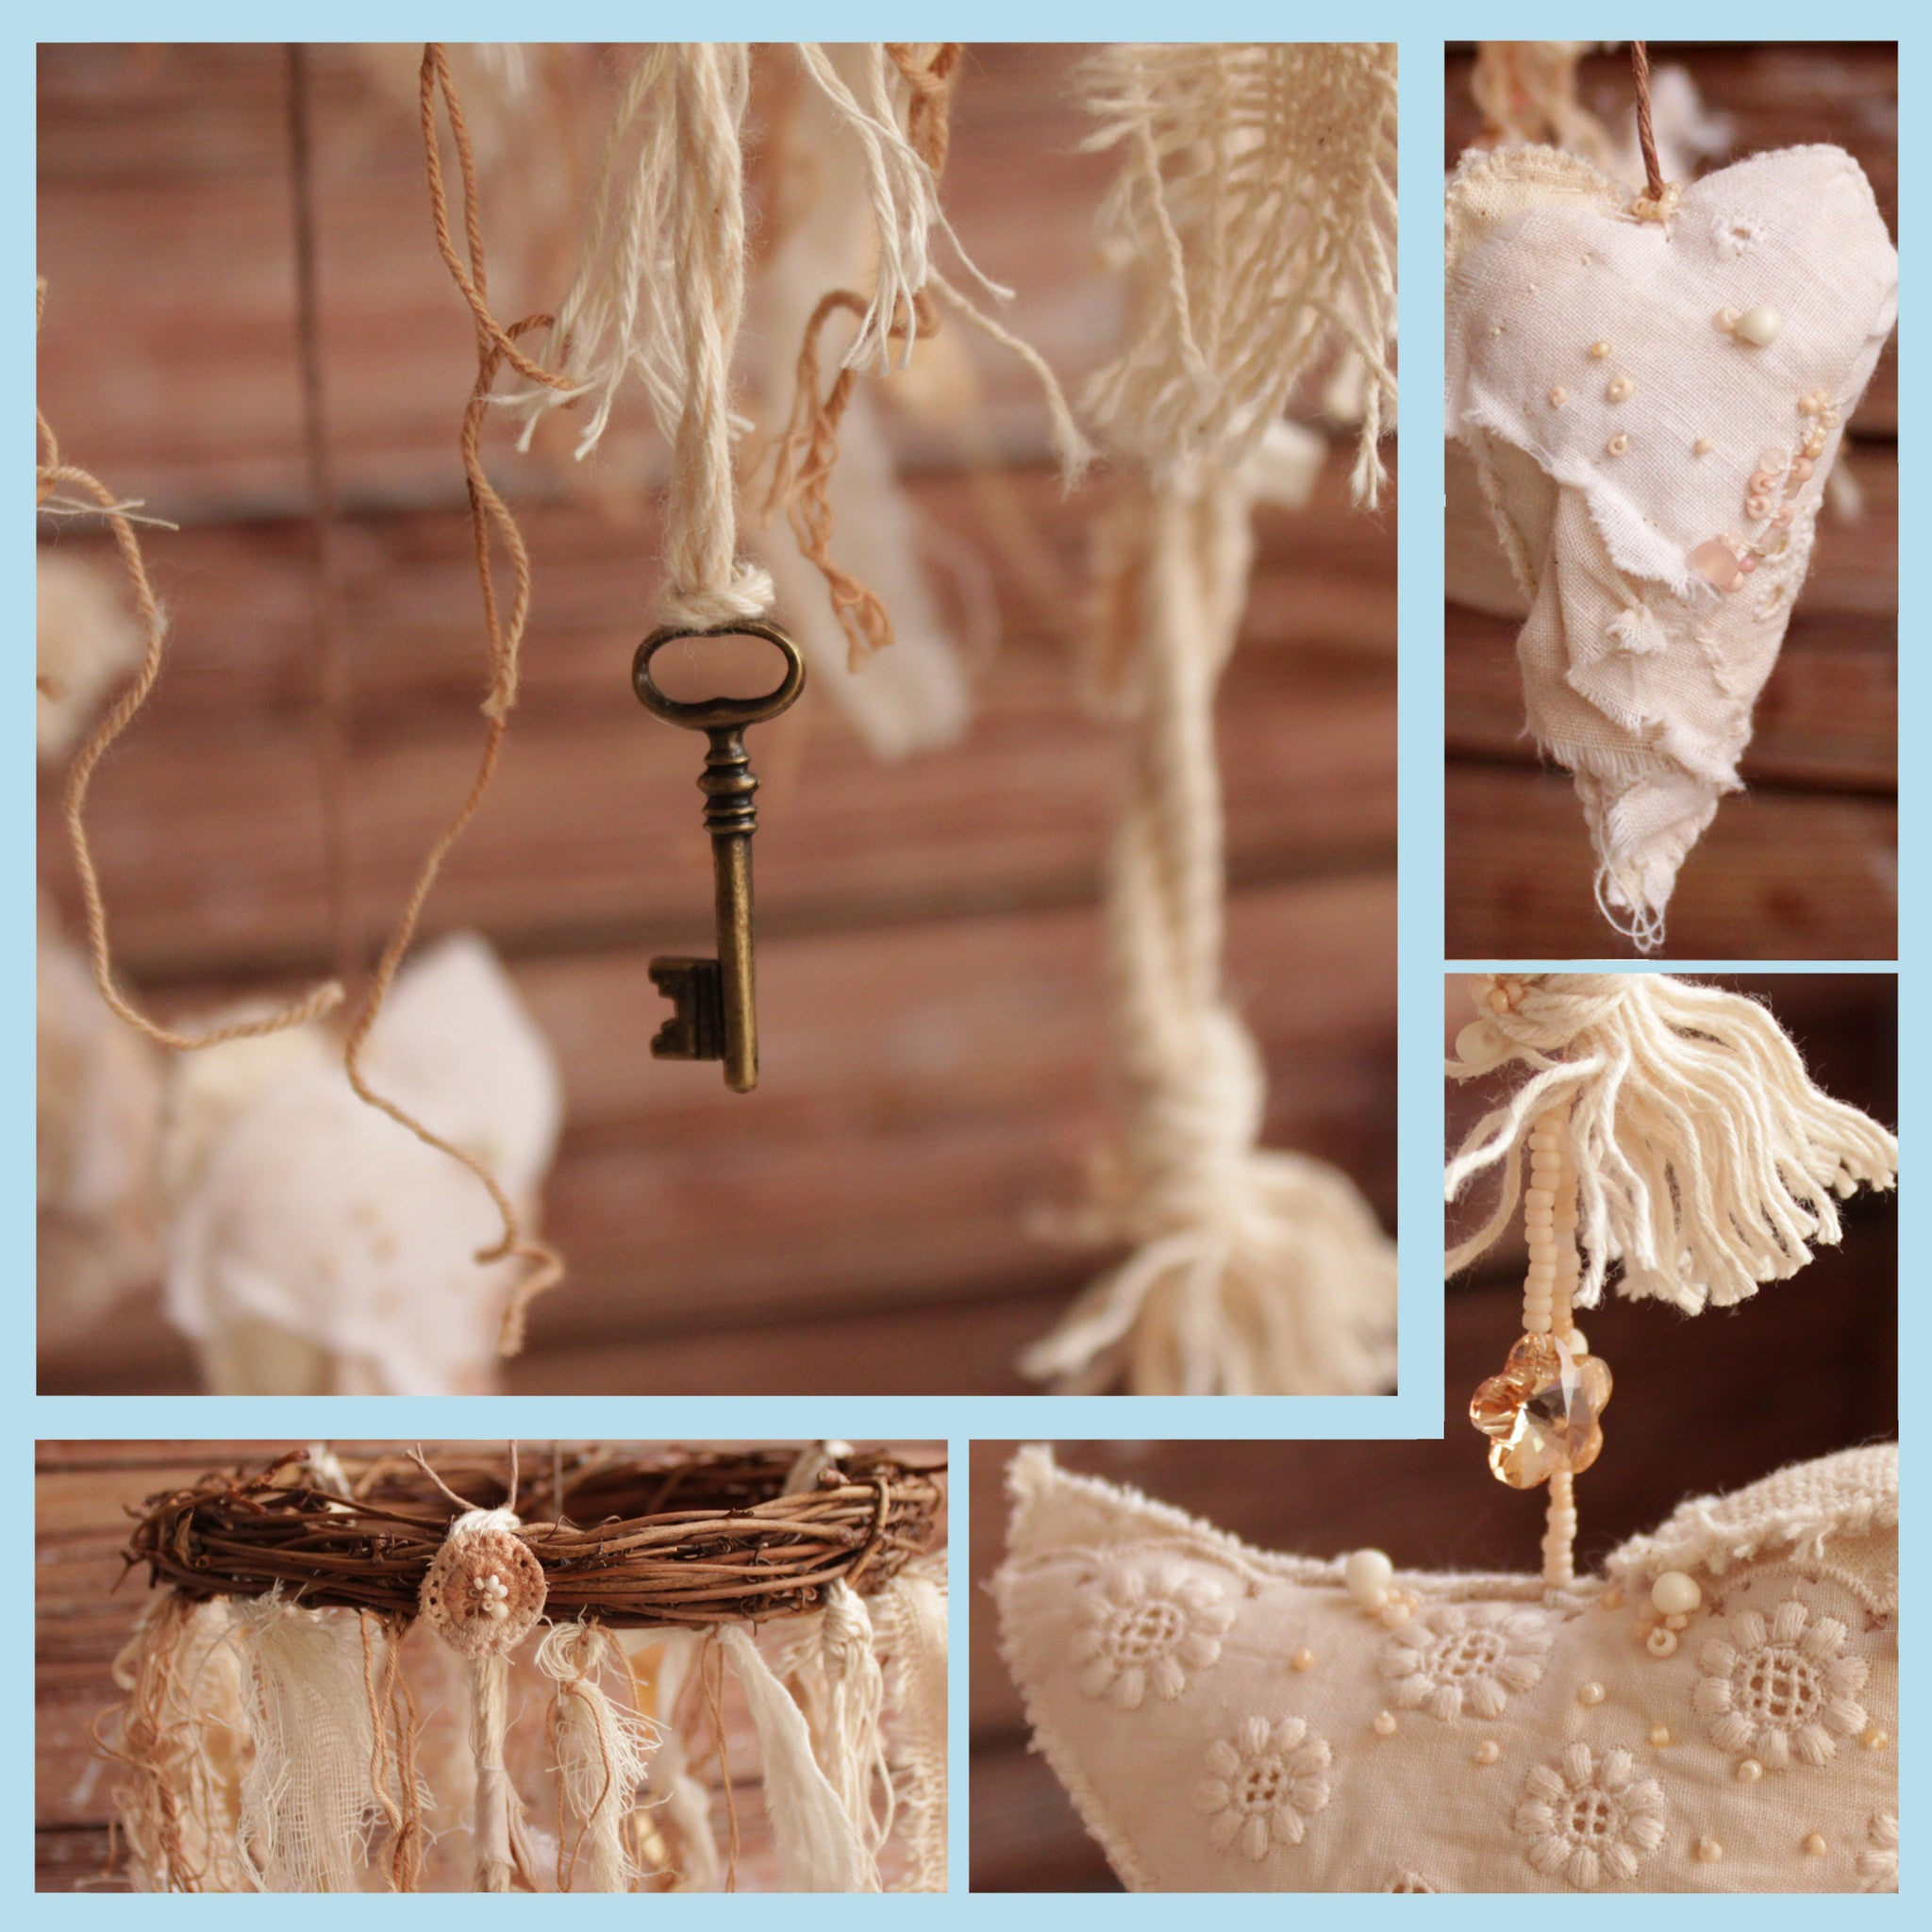 Shabby chic fabric birds mobile - rustic home décor